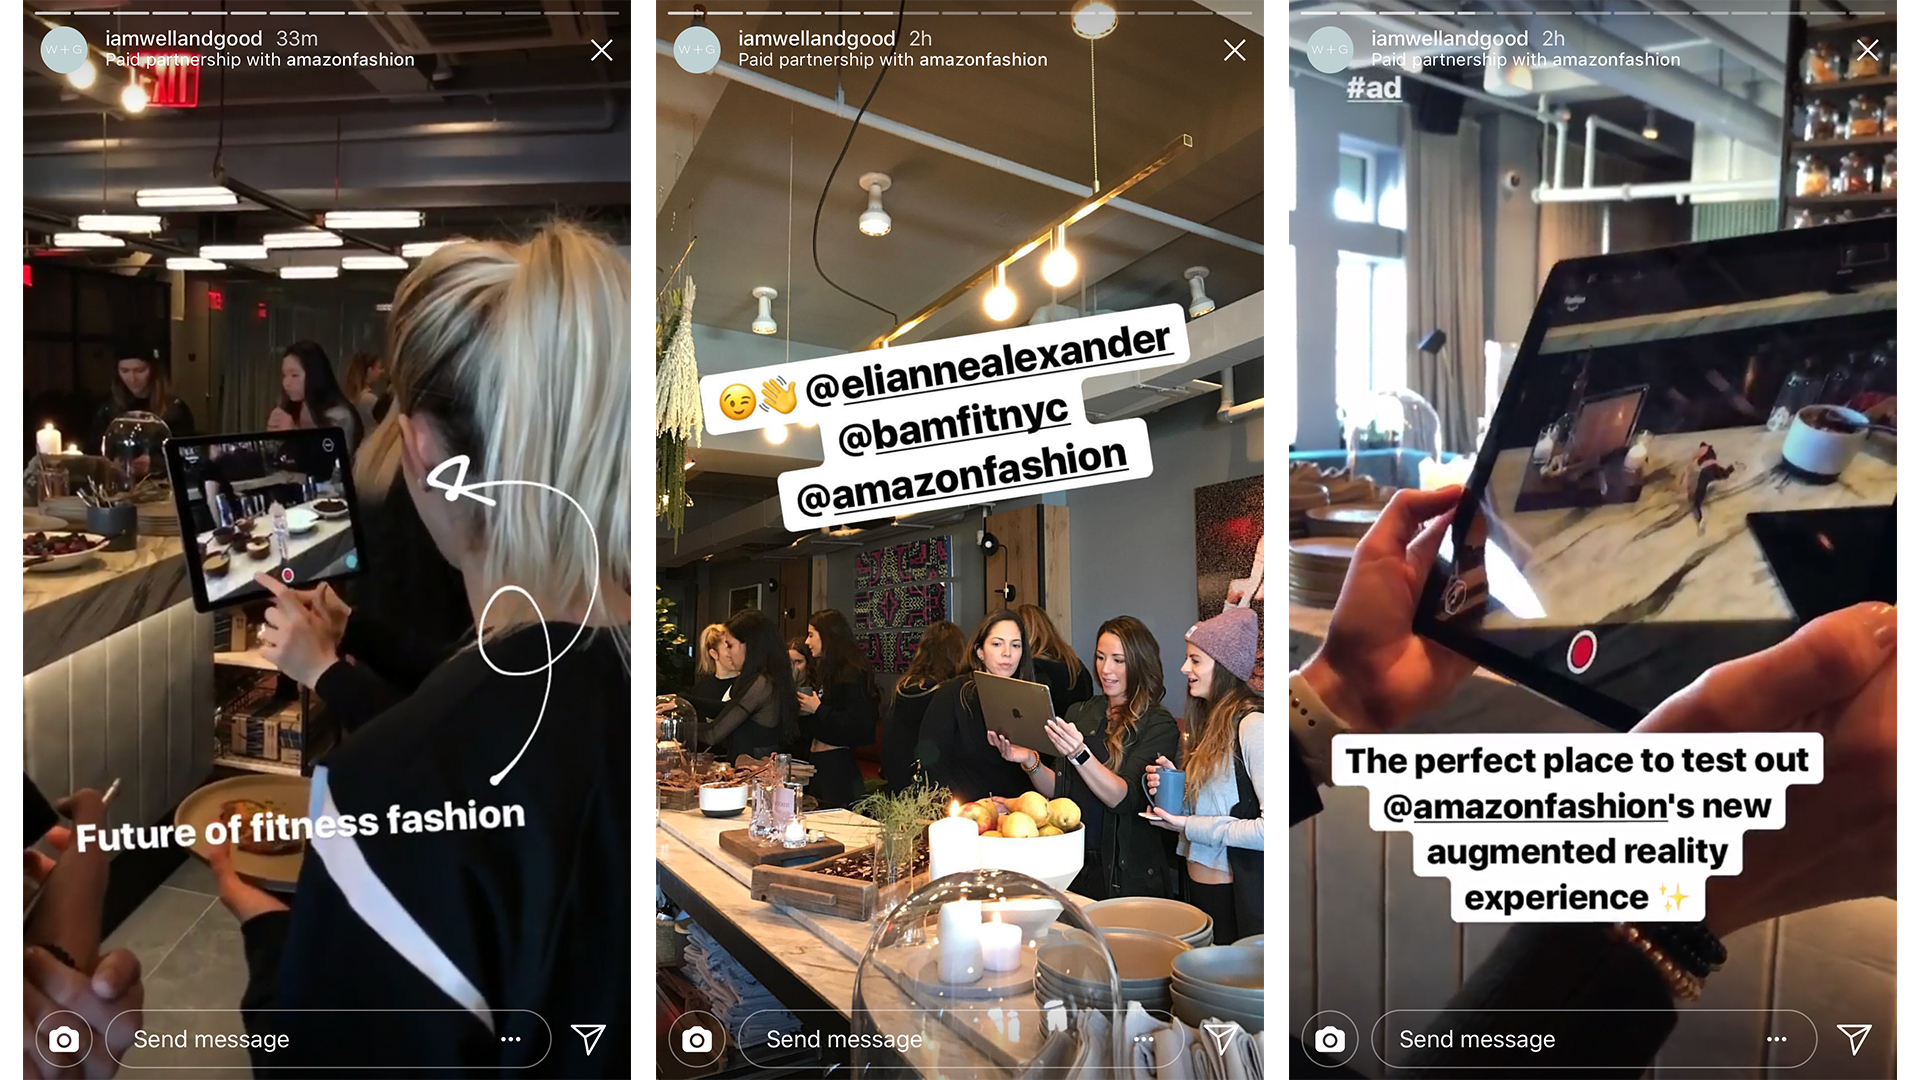 Instagram social shares of the Amazon AR Fitness experience